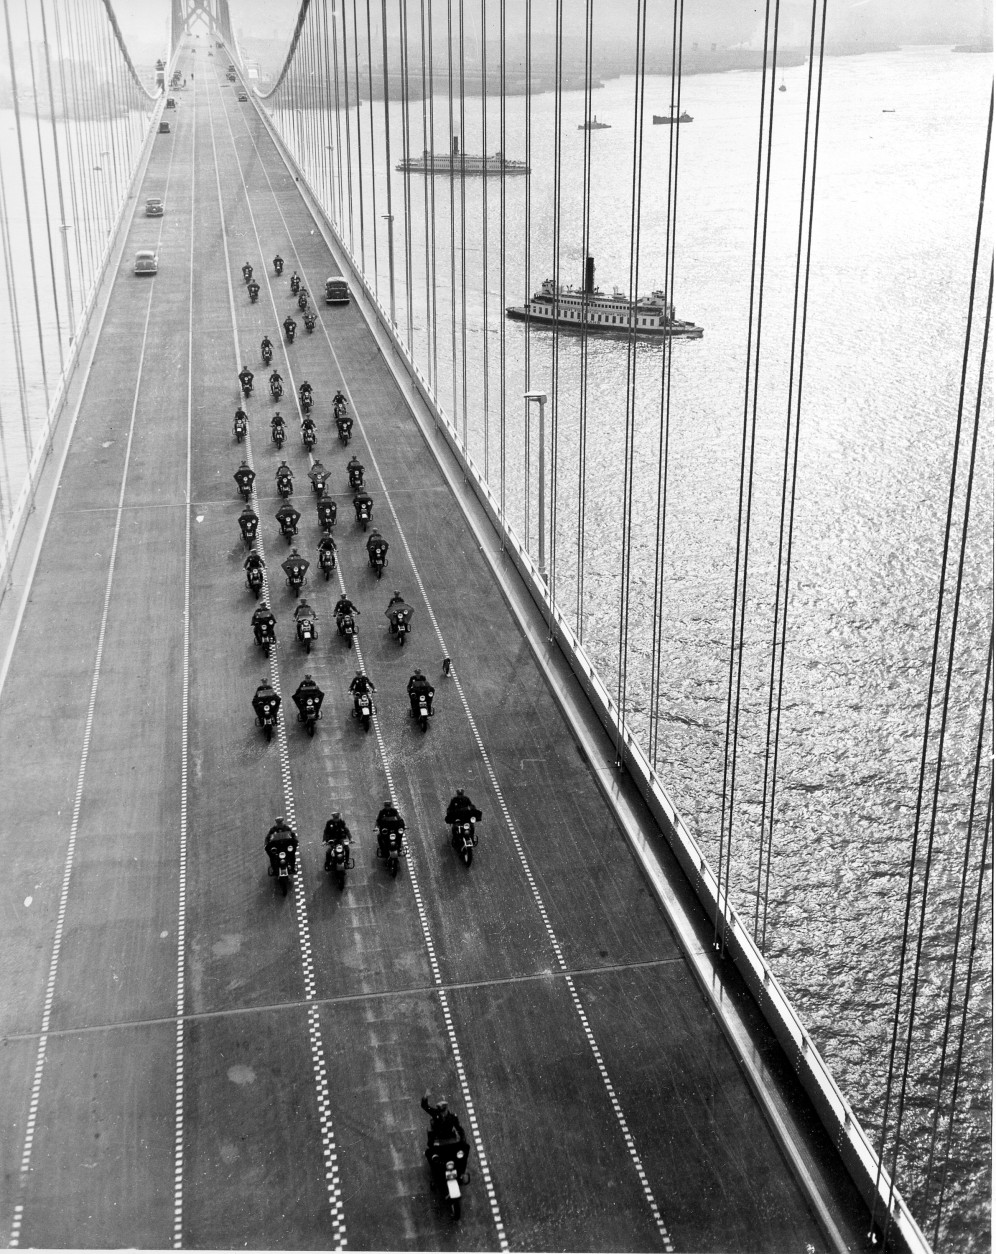 In this Nov. 12, 1936 photo, State Highway policemen cross the western span of the San Francisco-Oakland Bay Bridge during its opening in San Francisco.  The project cost  $77.6 million. The bridge has been closed indefinitely after a rod installed during last month's emergency repairs snapped, Tuesday, Oct. 27, 2009, causing a traffic nightmare for the 280,000 motorists who cross the landmark span every day. (AP Photo)